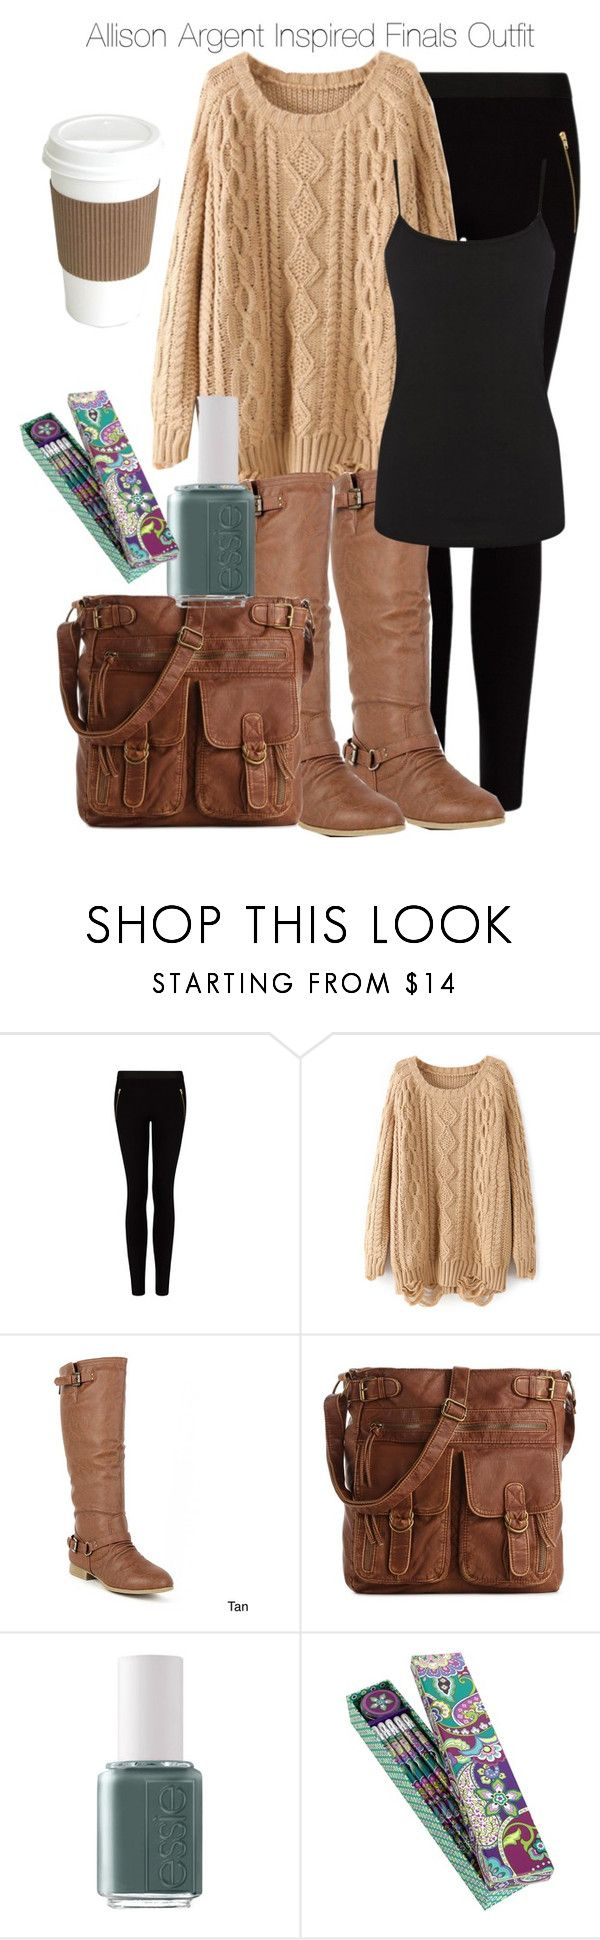 Teen Wolf - Allison Argent Inspired Finals Outfit by nathj on Polyvore featuring Warehouse, MANGO, Top Moda, Mix No. 6, Essie, Vera Bradley, allisonargent and tw